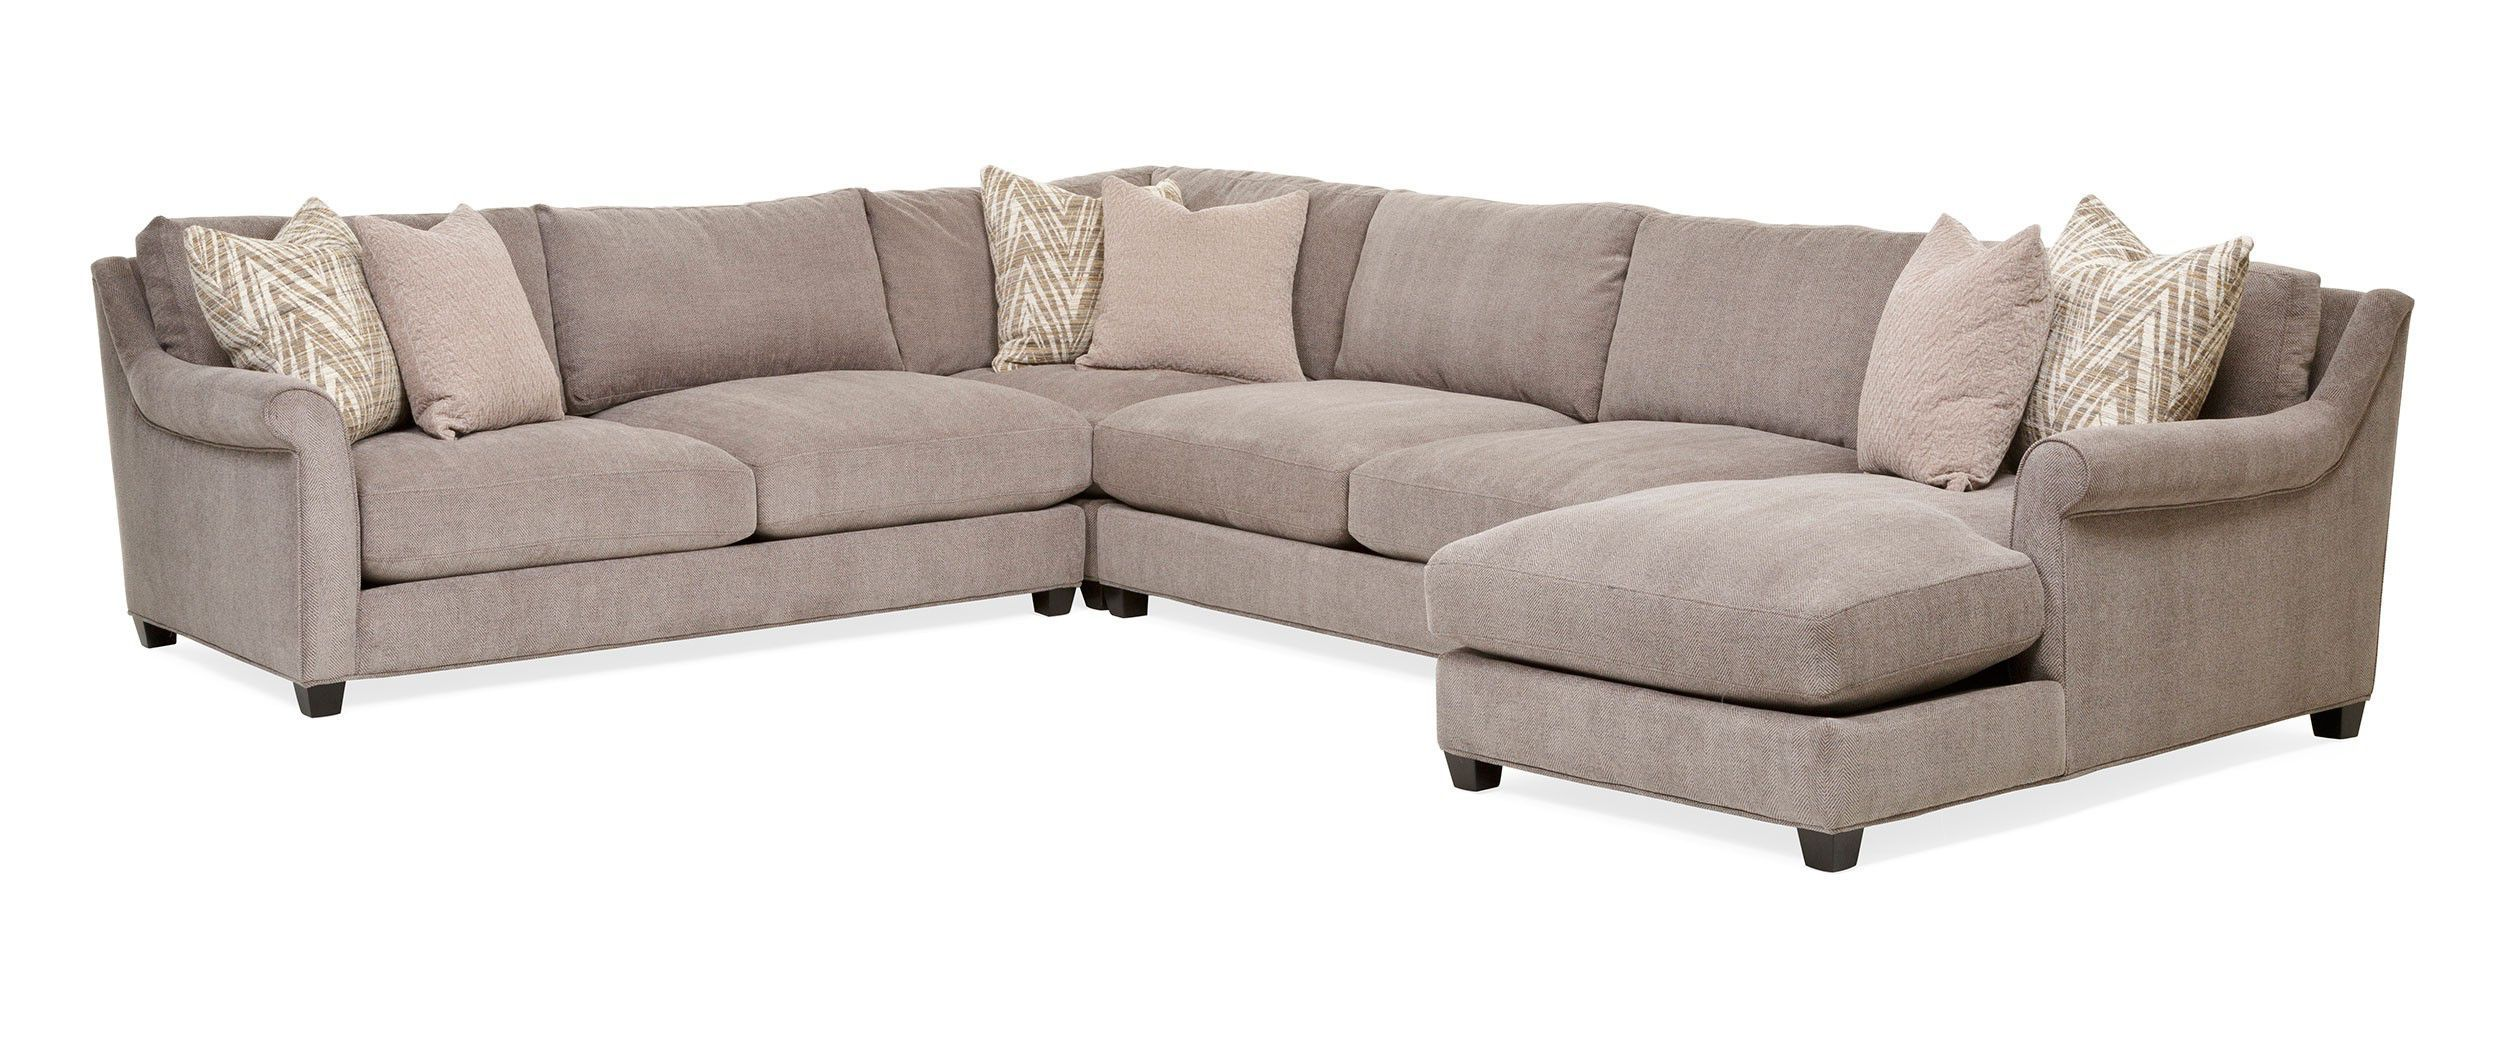 furniture corner pieces. Accent Furniture · This Sprawling, Modular Sectional Is As Flexible They Come! 4-piece Corner Pieces R